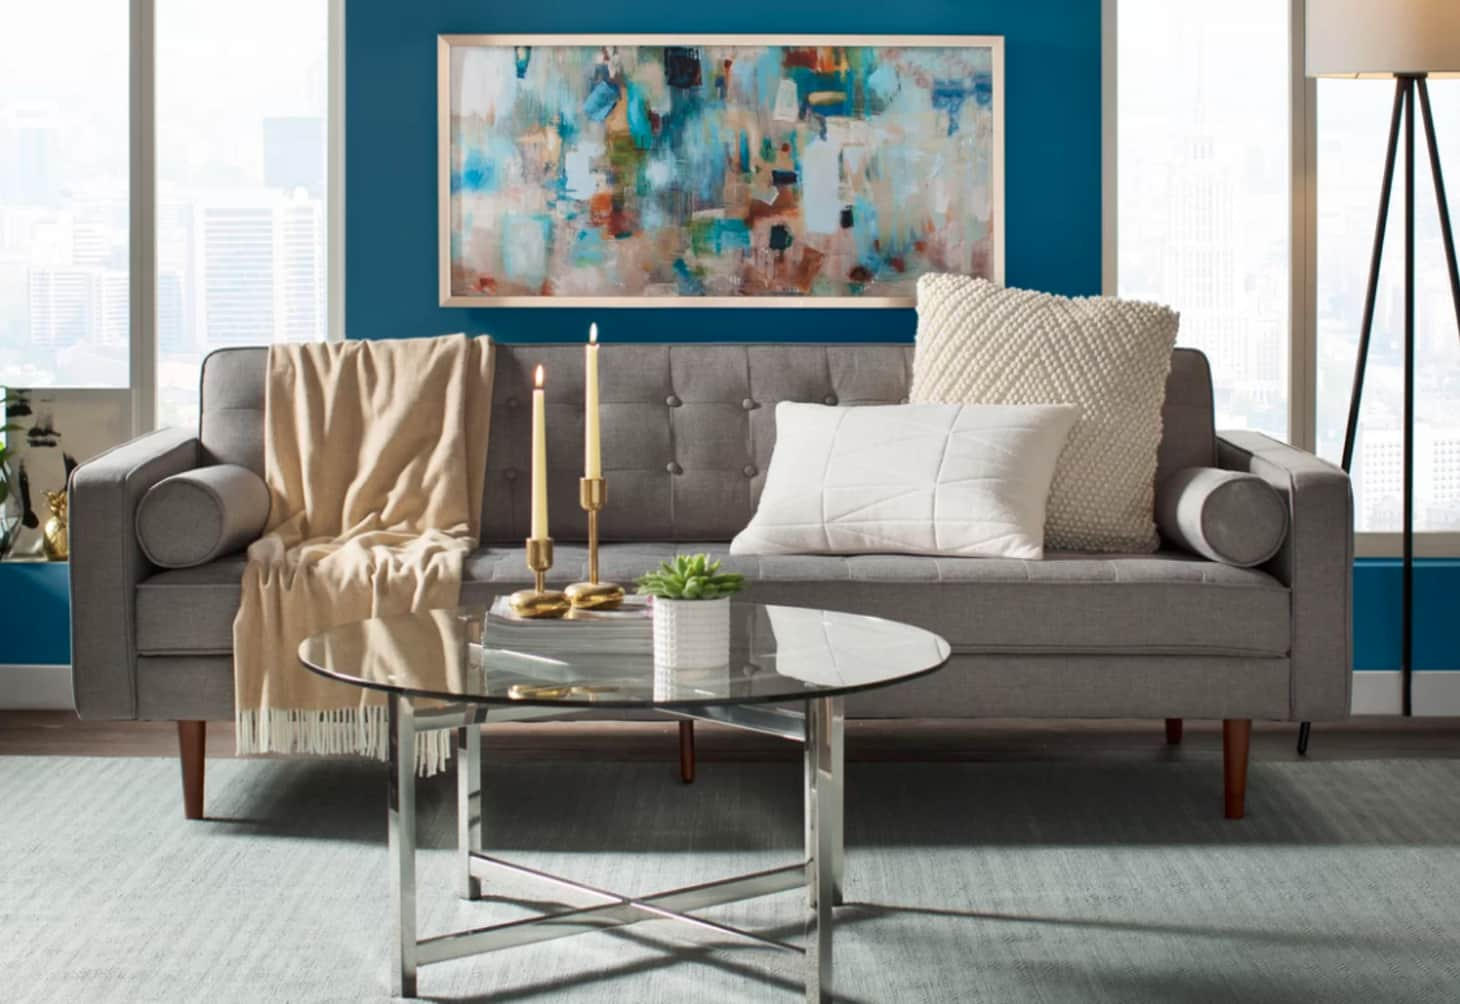 IKEA Alternatives - Affordable Modern Furniture | Apartment Therapy